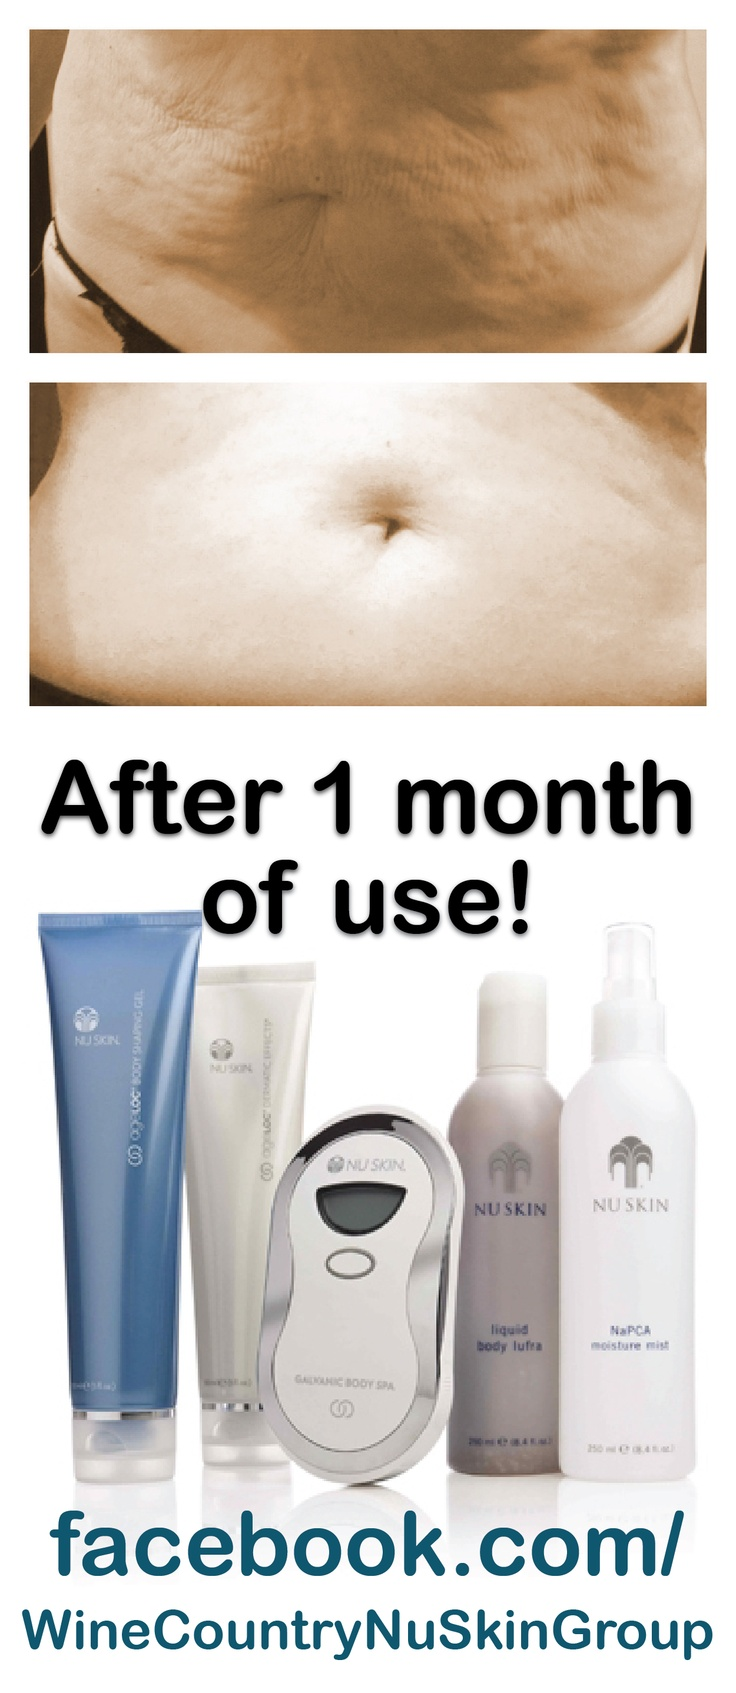 Give yourself the git of getting your body back in your control! with the NuSkin Galvanic Body Spa Results after only 1 month of treatment